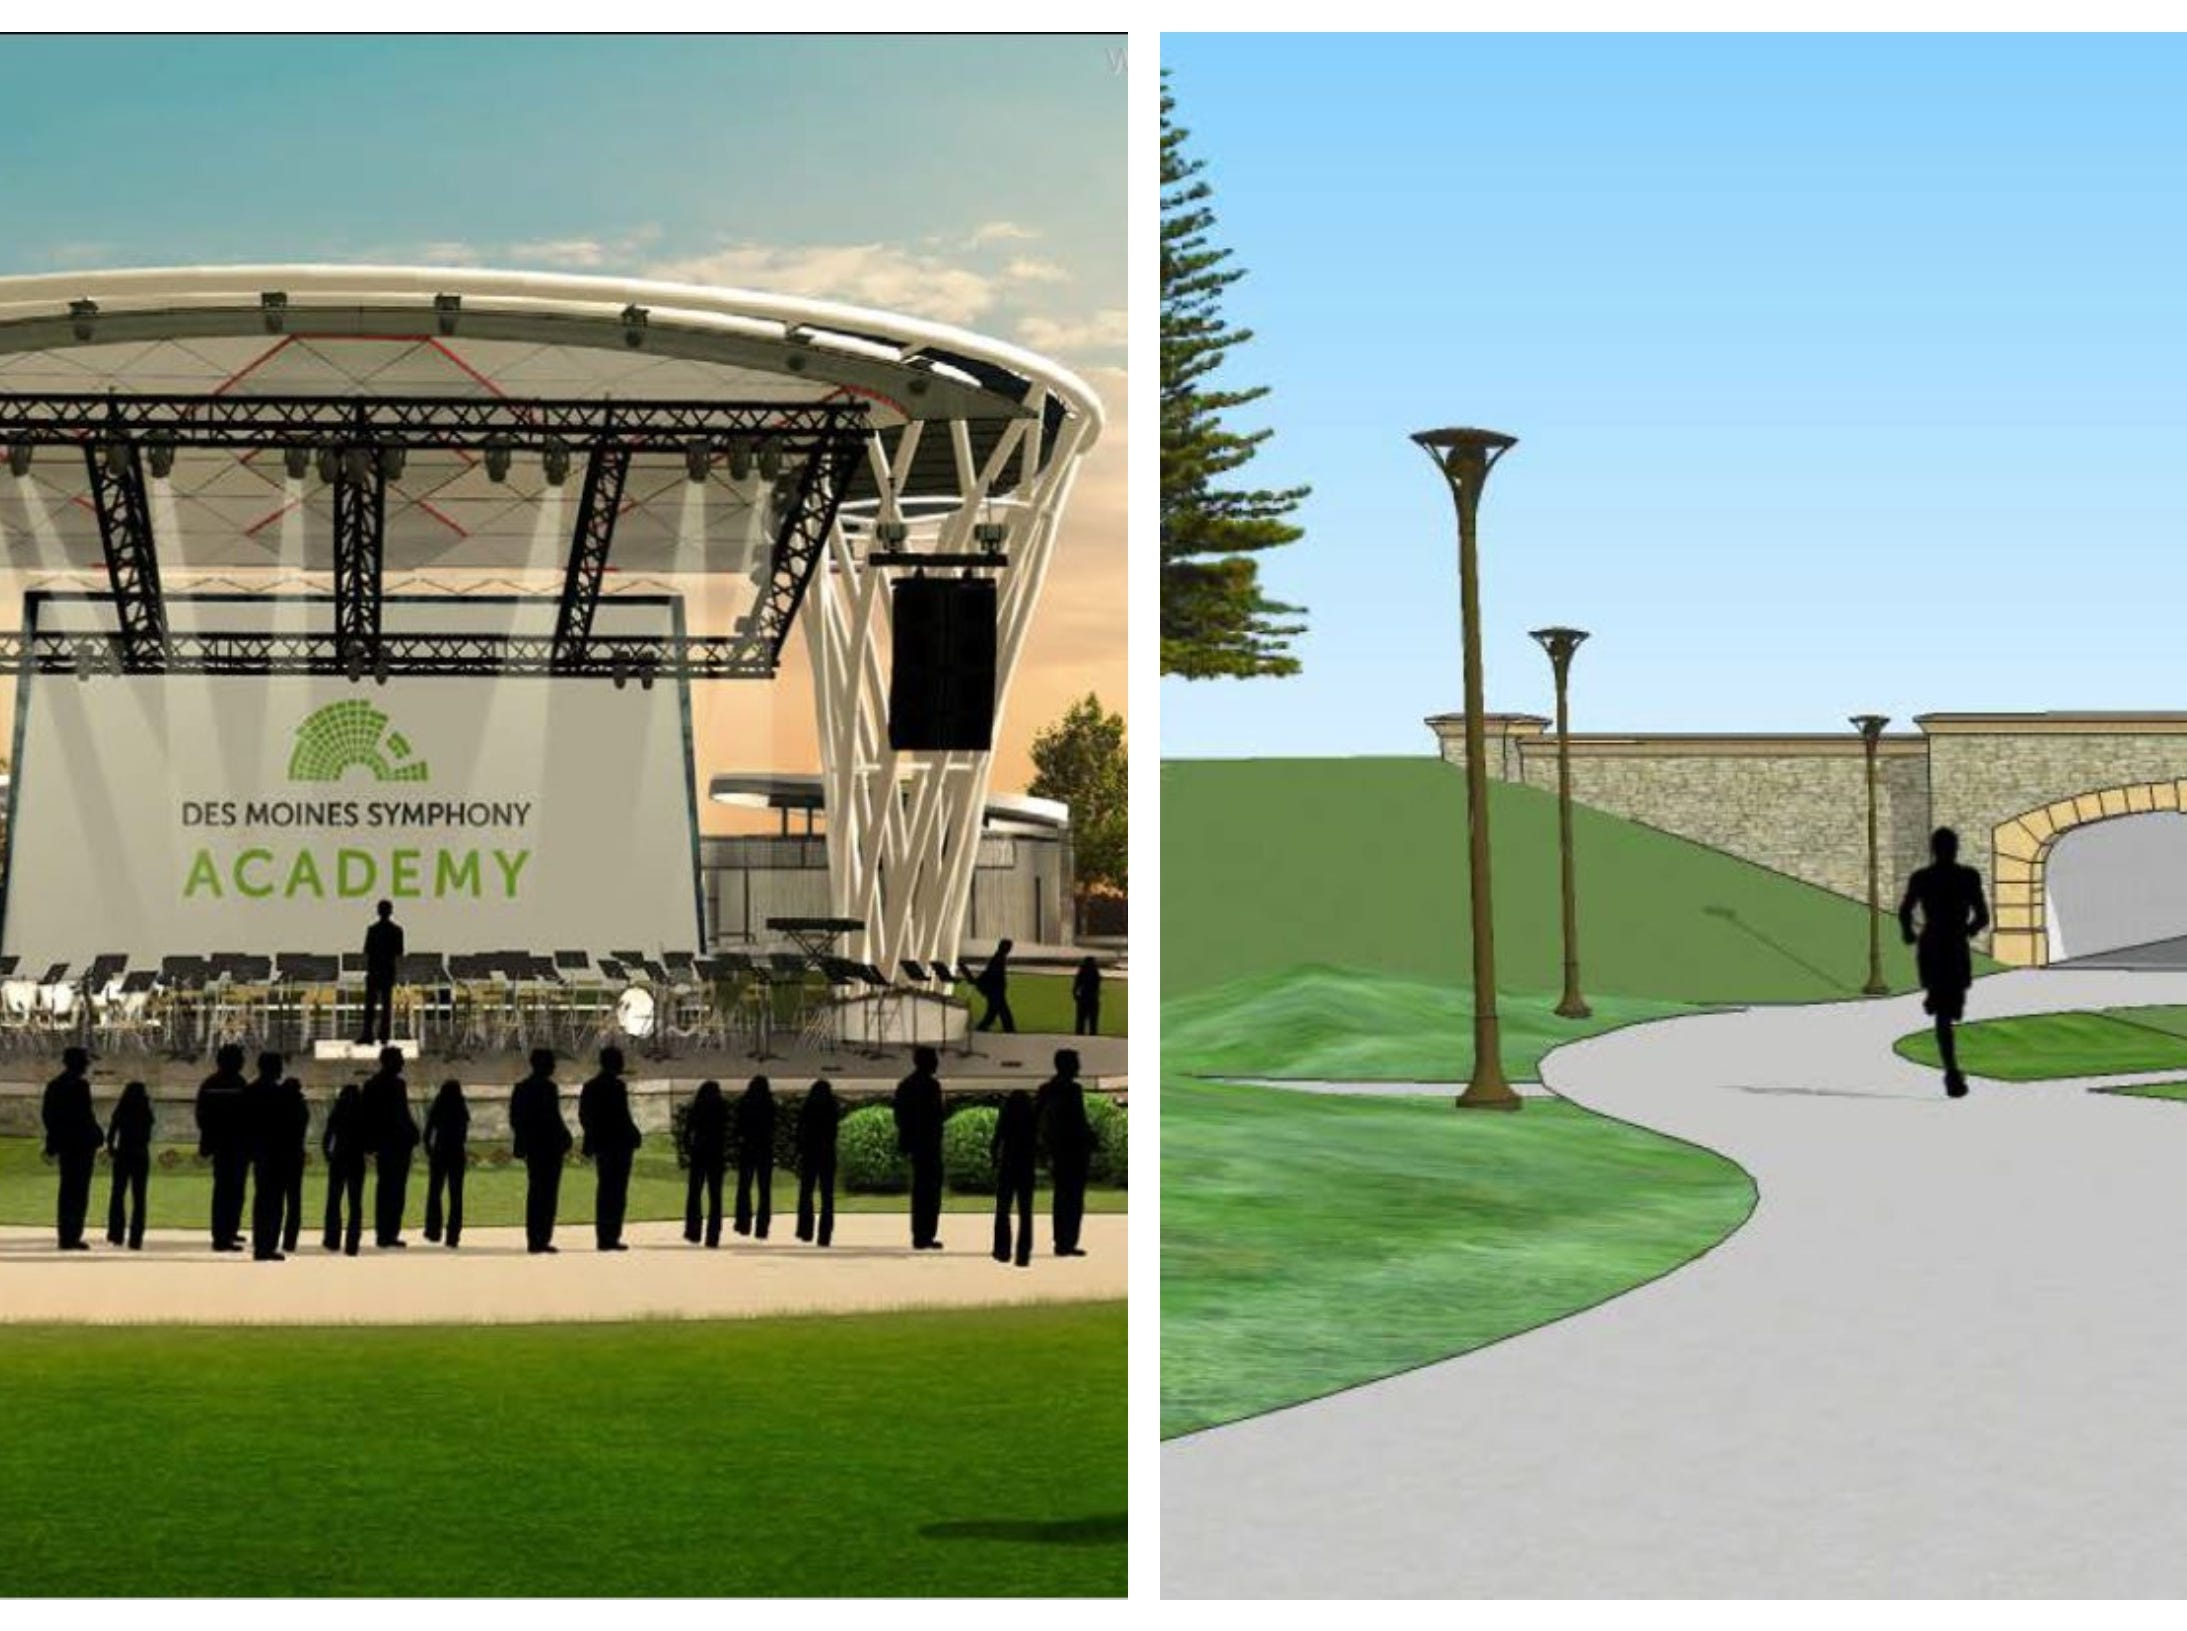 4. The new amphitheater at Water Works Park is set to open in the summer (left). Construction on the tunnel connecting Water Works Park to Gray's Lake under Fleur Drive is also expected to start (right).